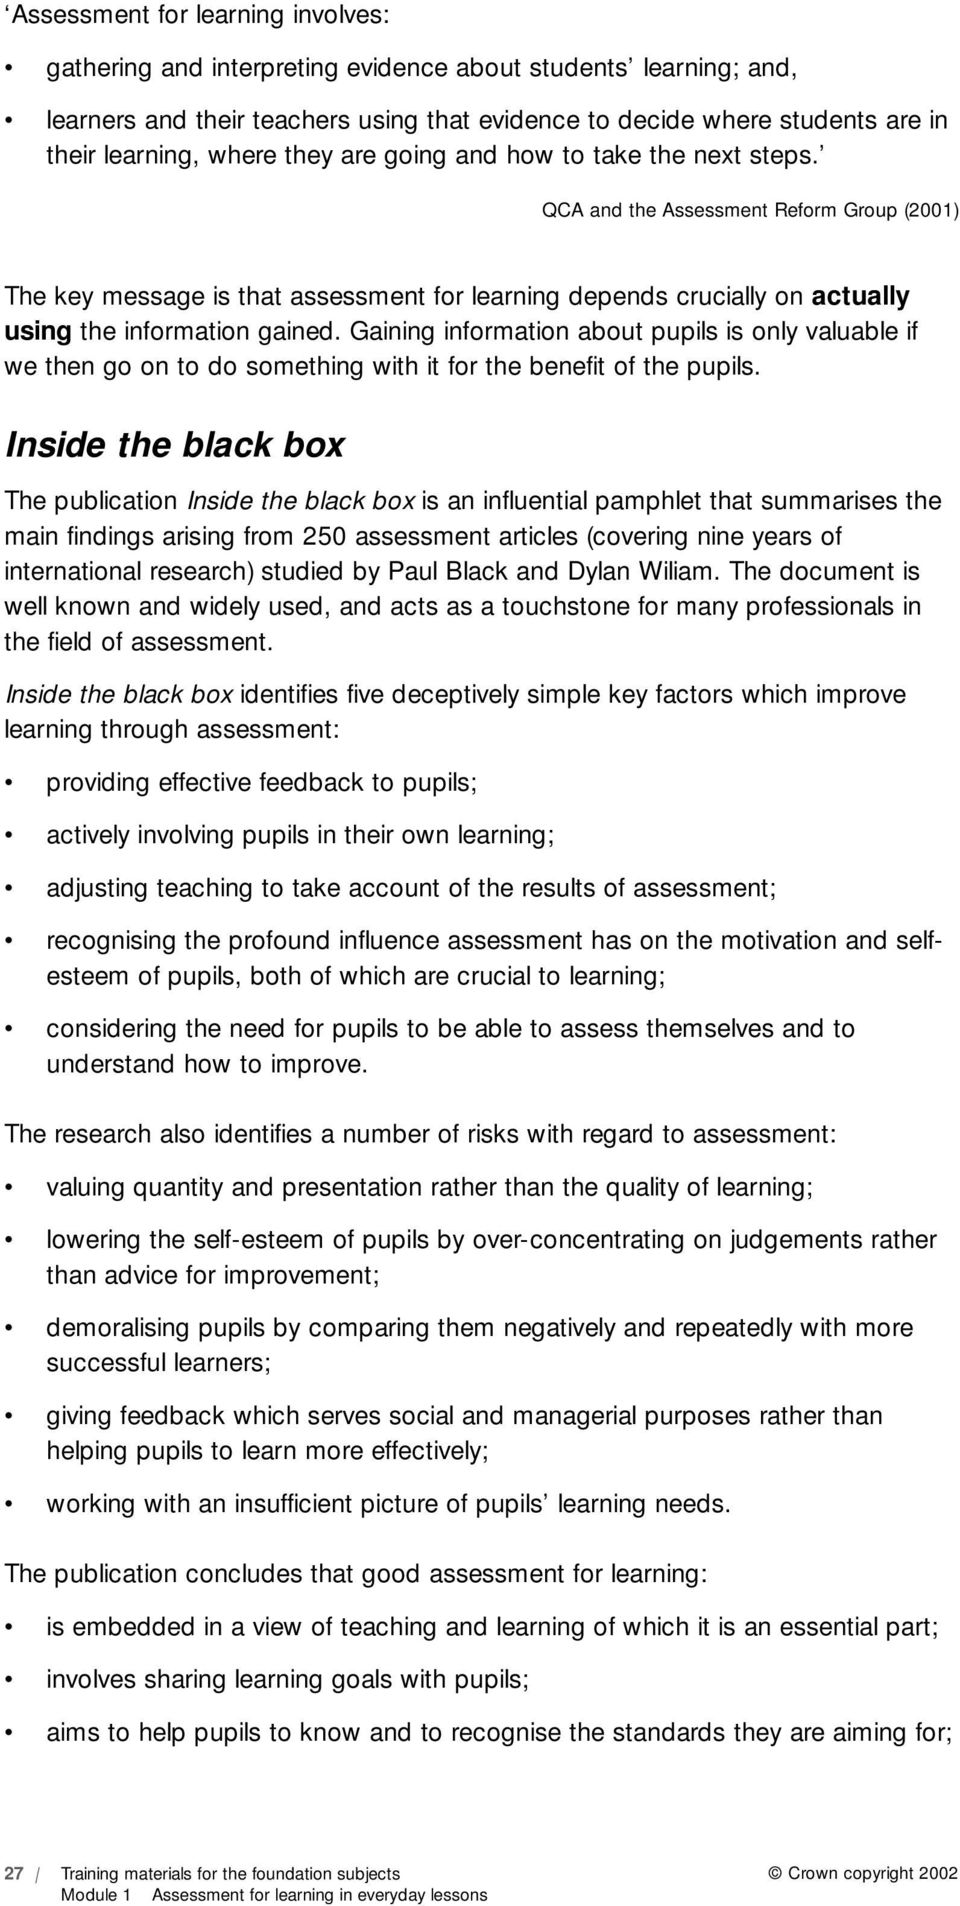 QCA and the Assessment Reform Group (2001) The key message is that assessment for learning depends crucially on actually using the information gained.